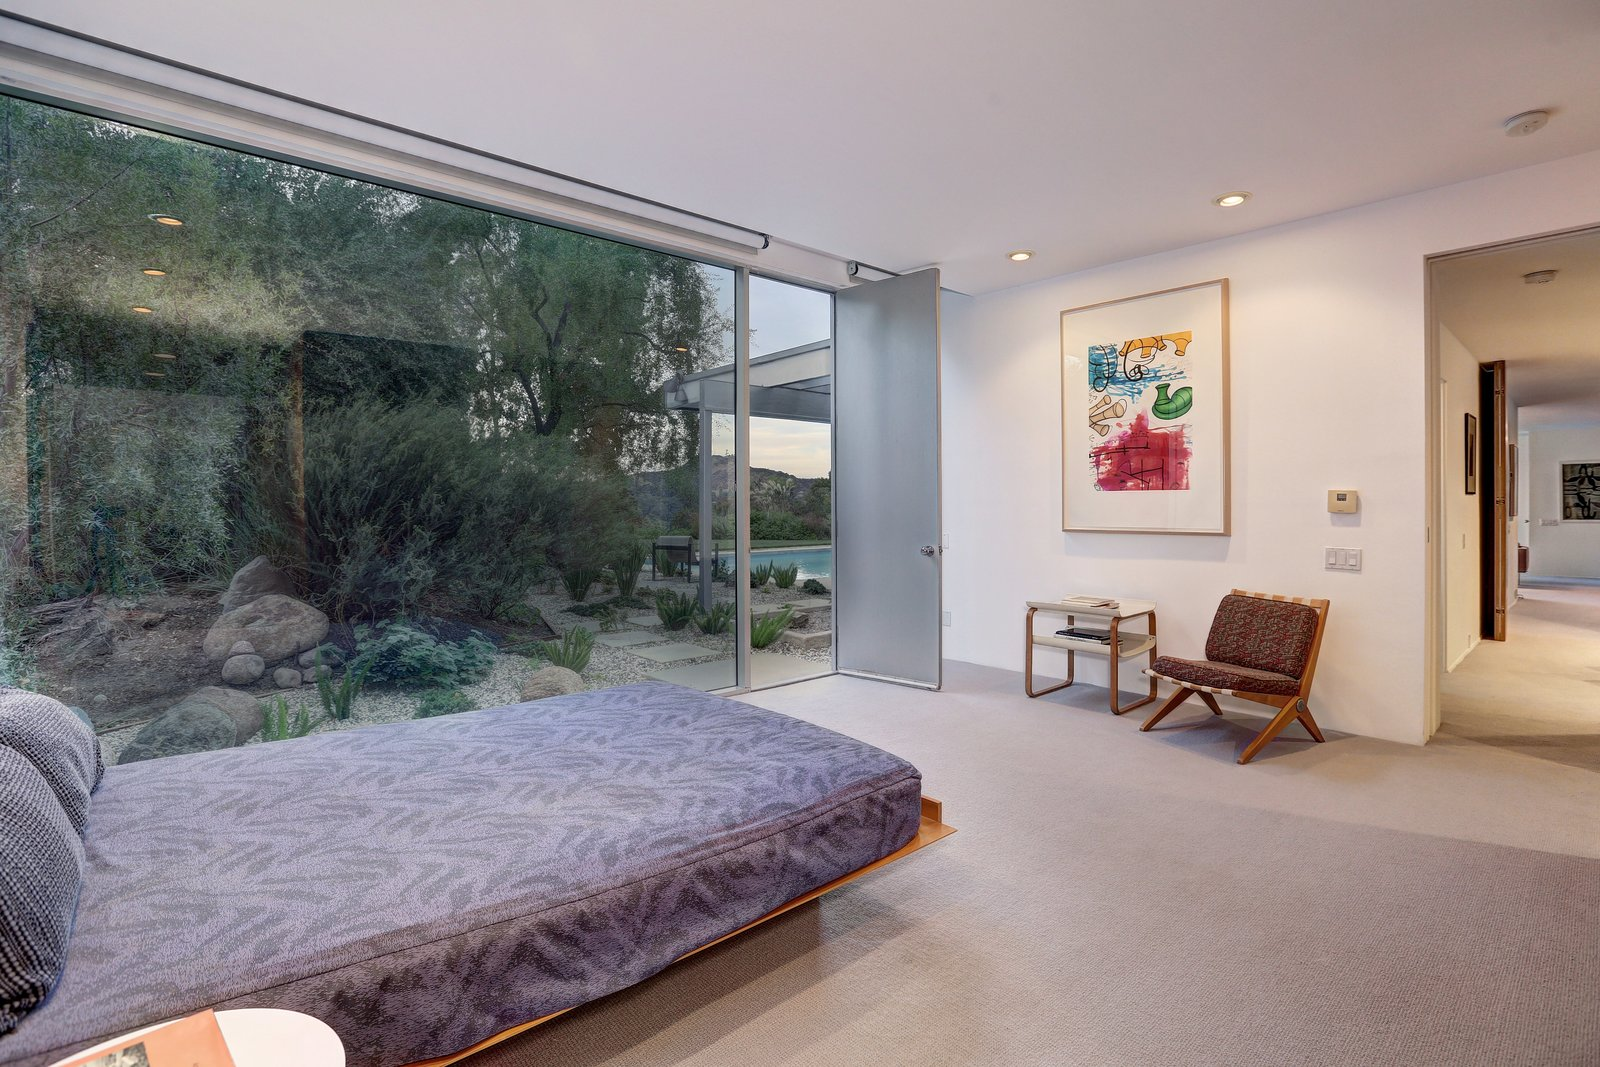 Bedroom, Chair, Carpet Floor, Recessed Lighting, Bed, and Night Stands The Master Bedroom addition completed by Escher GuneWardena, matches Neutra's original vision for expansion as shown in the archival plans.  A George Nelson influenced bed by Roberston + McAnulty looks onto the private gardens.   Photo 5 of 11 in Richard Neutra's Stunning Loring House Is Listed For $5.6M